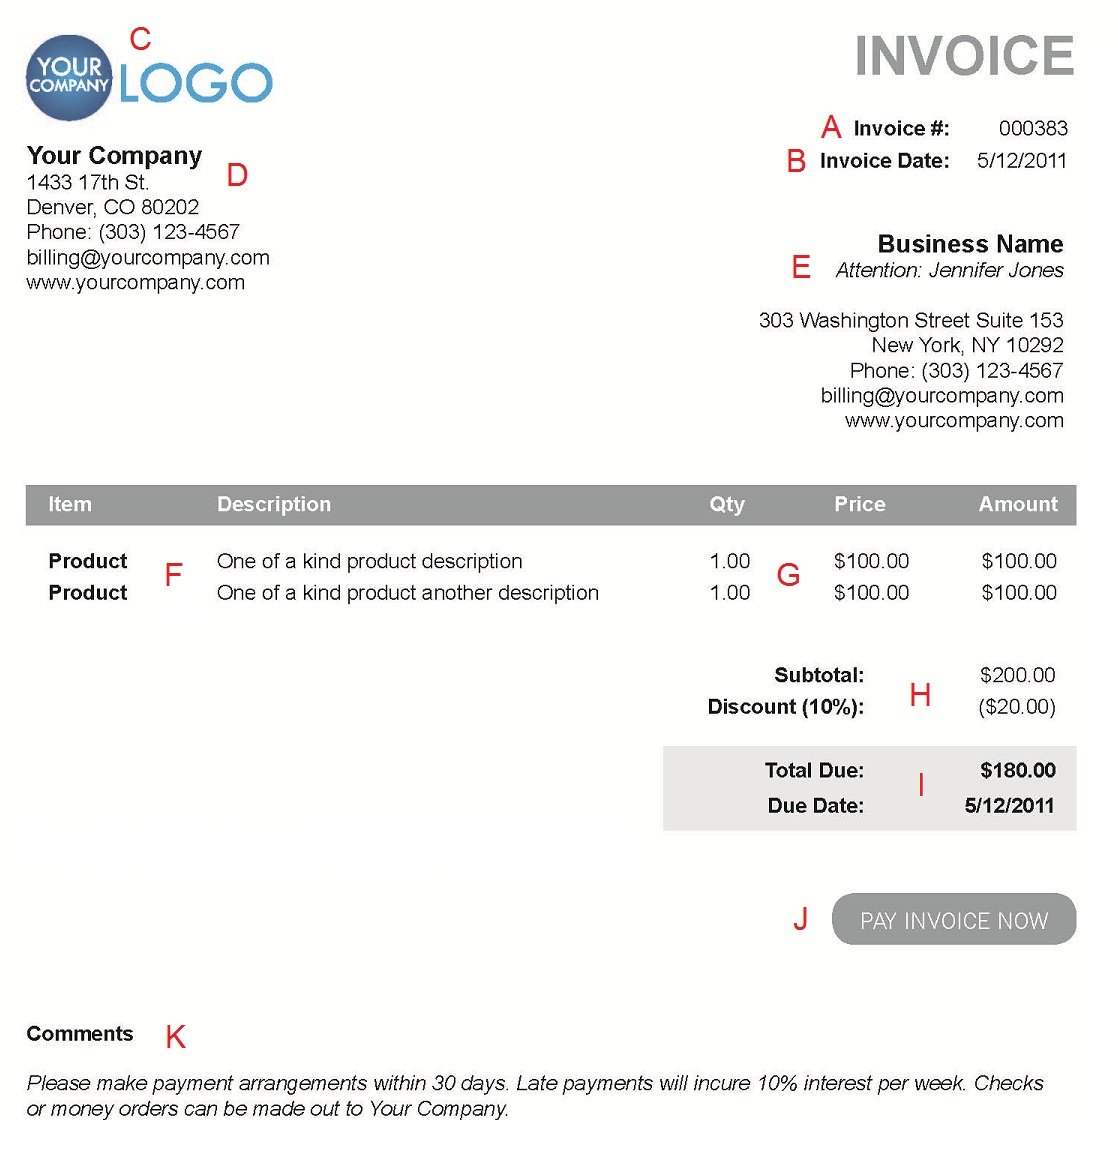 Musclebuildingtipsus  Surprising The  Different Sections Of An Electronic Payment Invoice With Handsome A  With Easy On The Eye Software Invoicing Also Invoice With Gst In Addition Hertz Invoices And Pay On Invoice As Well As What Is A Valid Tax Invoice Additionally Invoice Wizard From Paysimplecom With Musclebuildingtipsus  Handsome The  Different Sections Of An Electronic Payment Invoice With Easy On The Eye A  And Surprising Software Invoicing Also Invoice With Gst In Addition Hertz Invoices From Paysimplecom